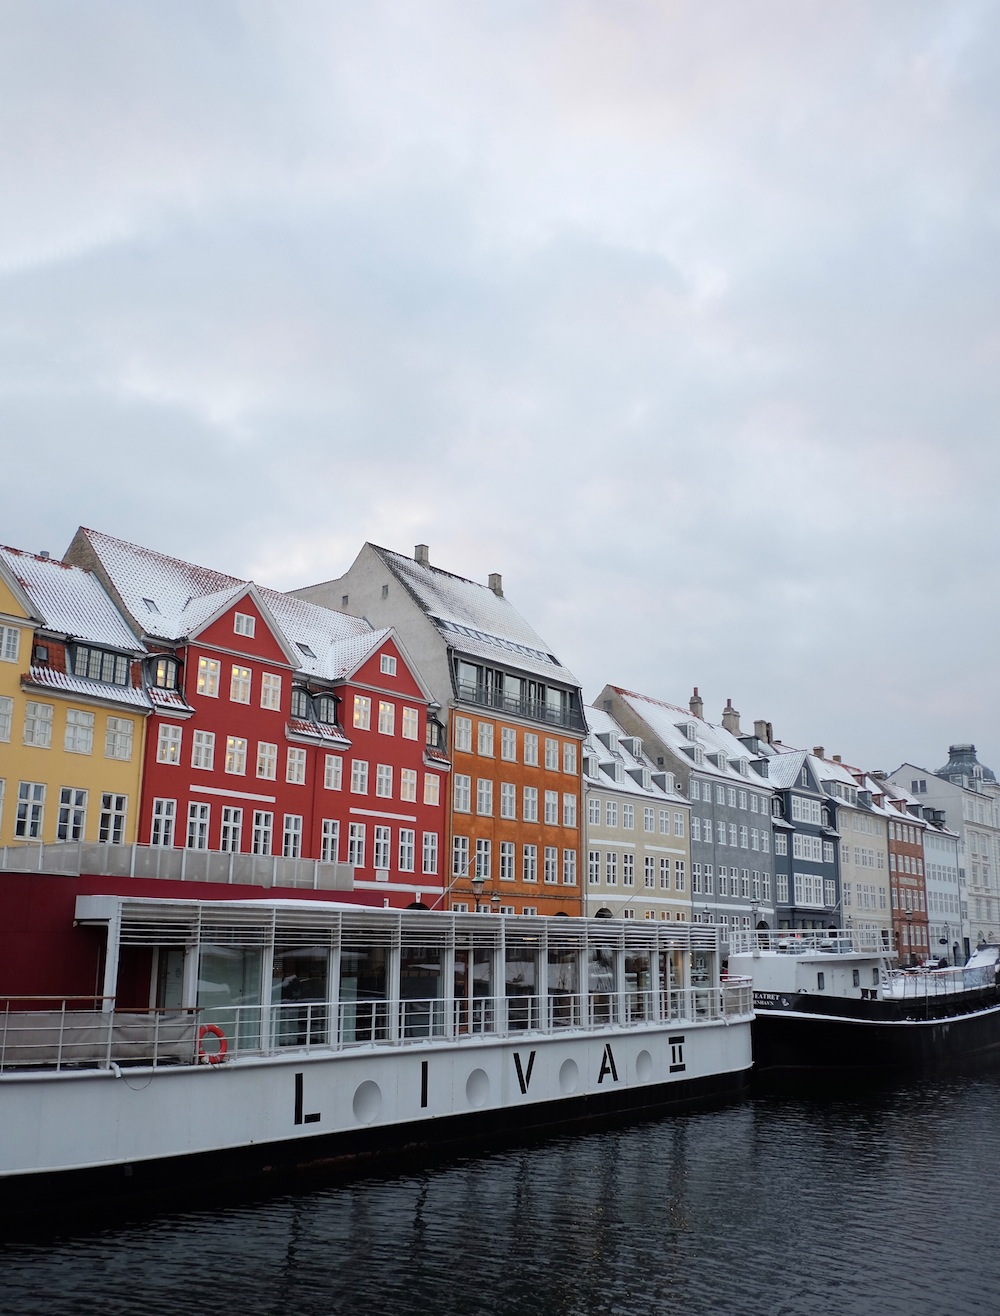 48 hours in copenhagen - rainbow buildings along nyhan